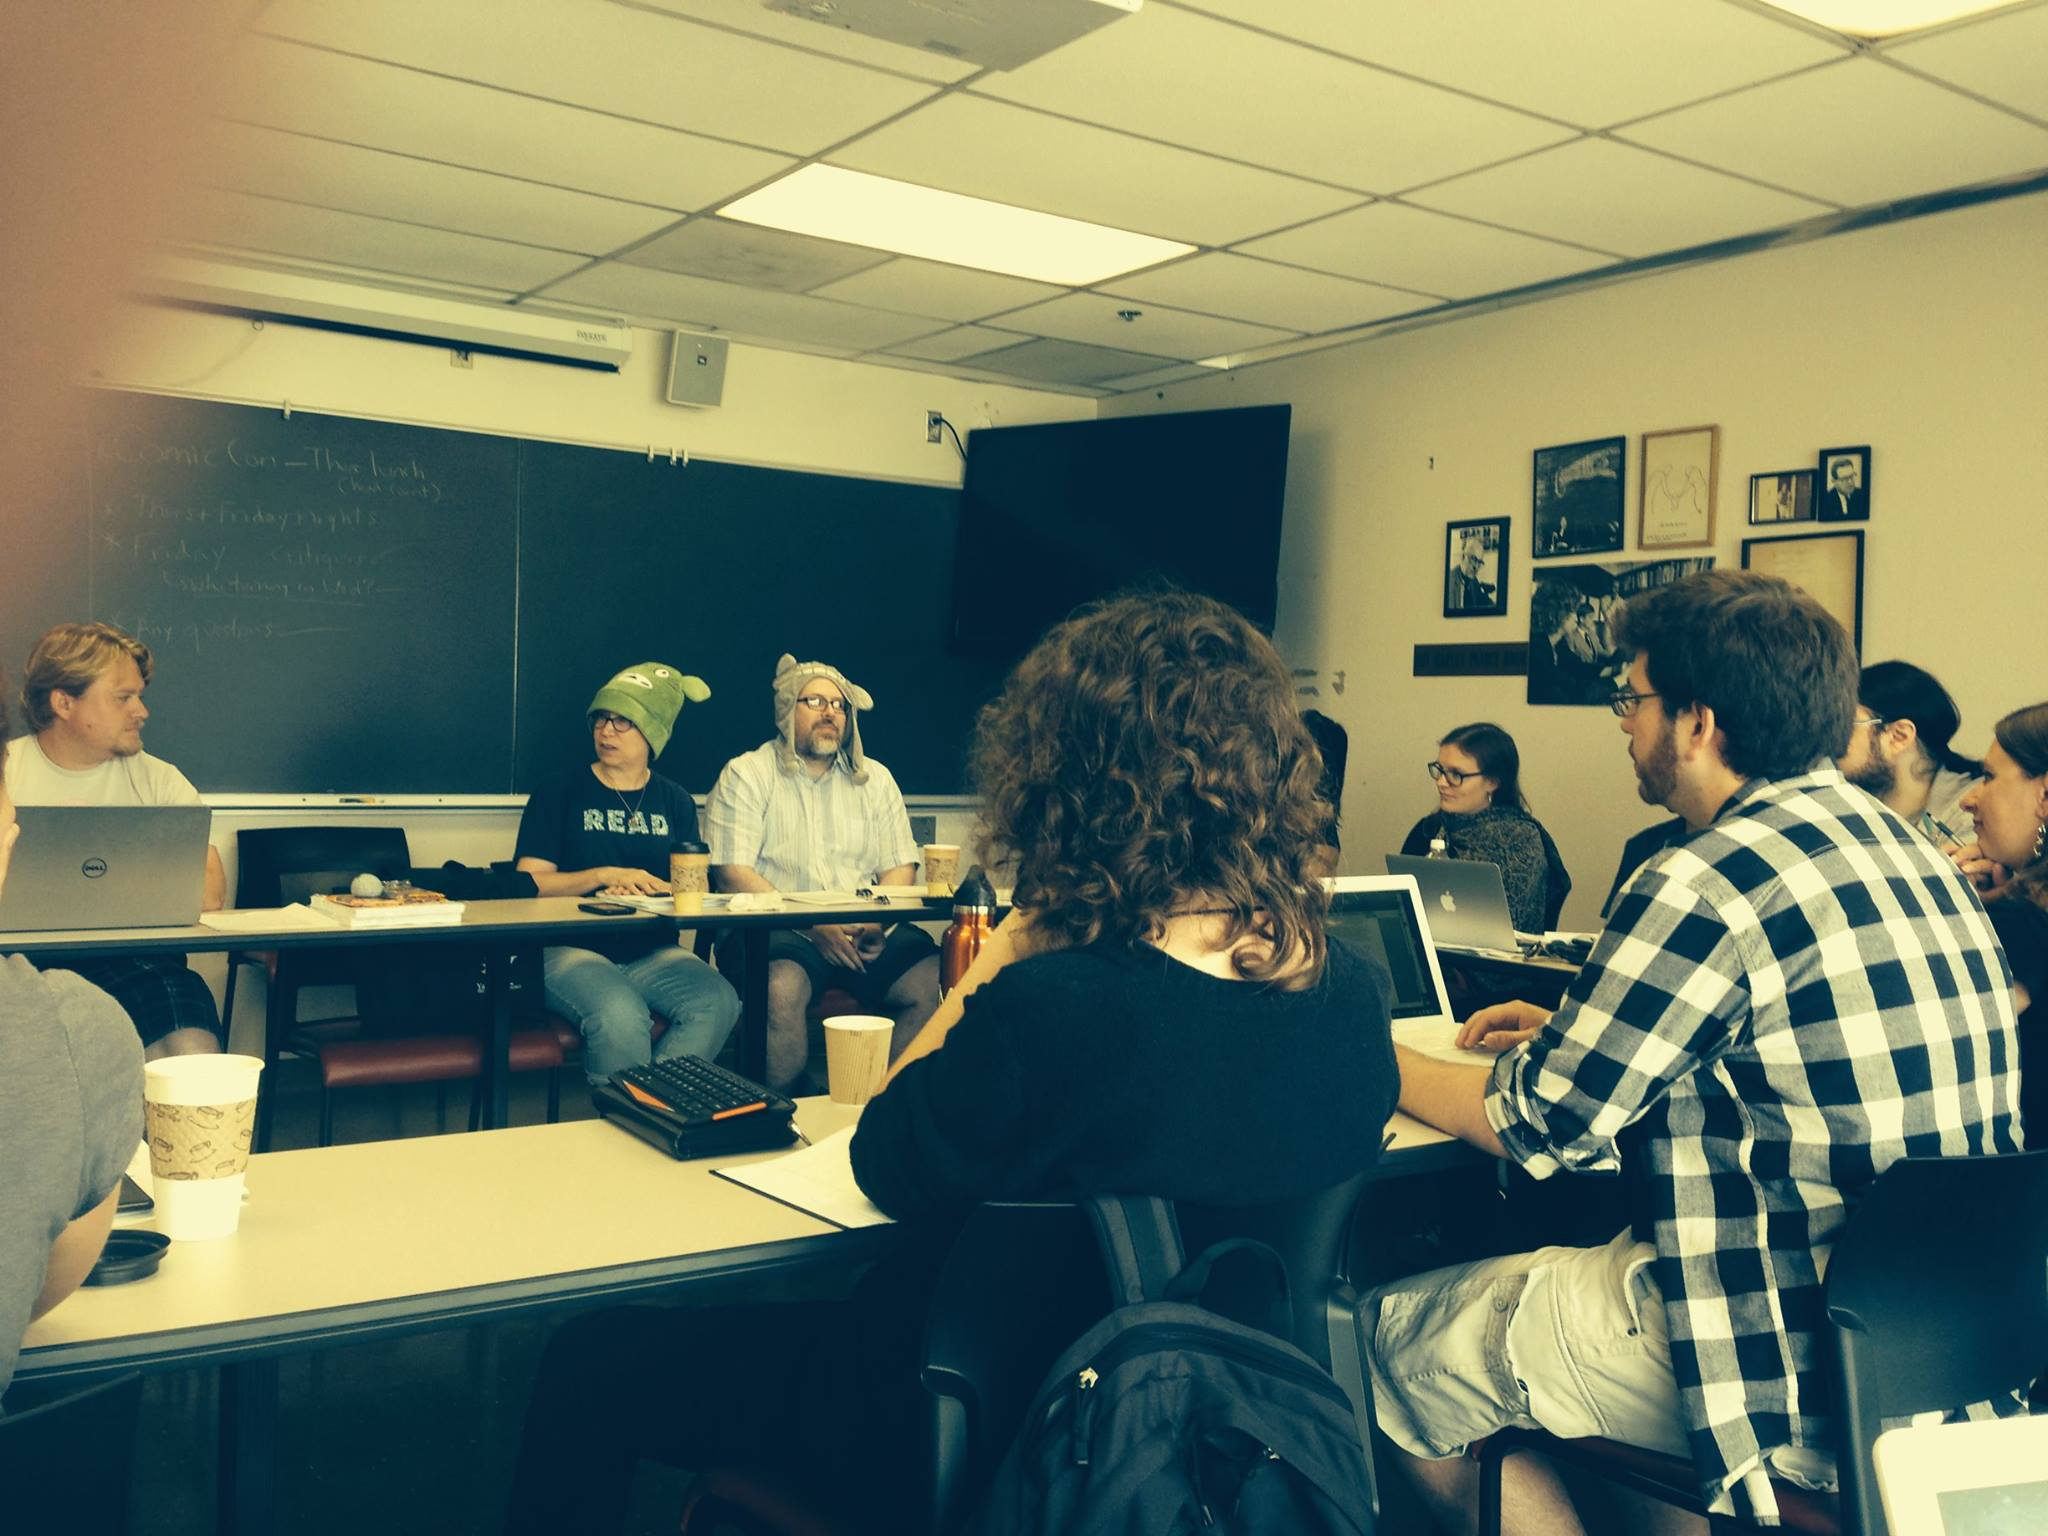 Jeff and Ann Vandermeer using creative methods in the Clarion 2014 classroom